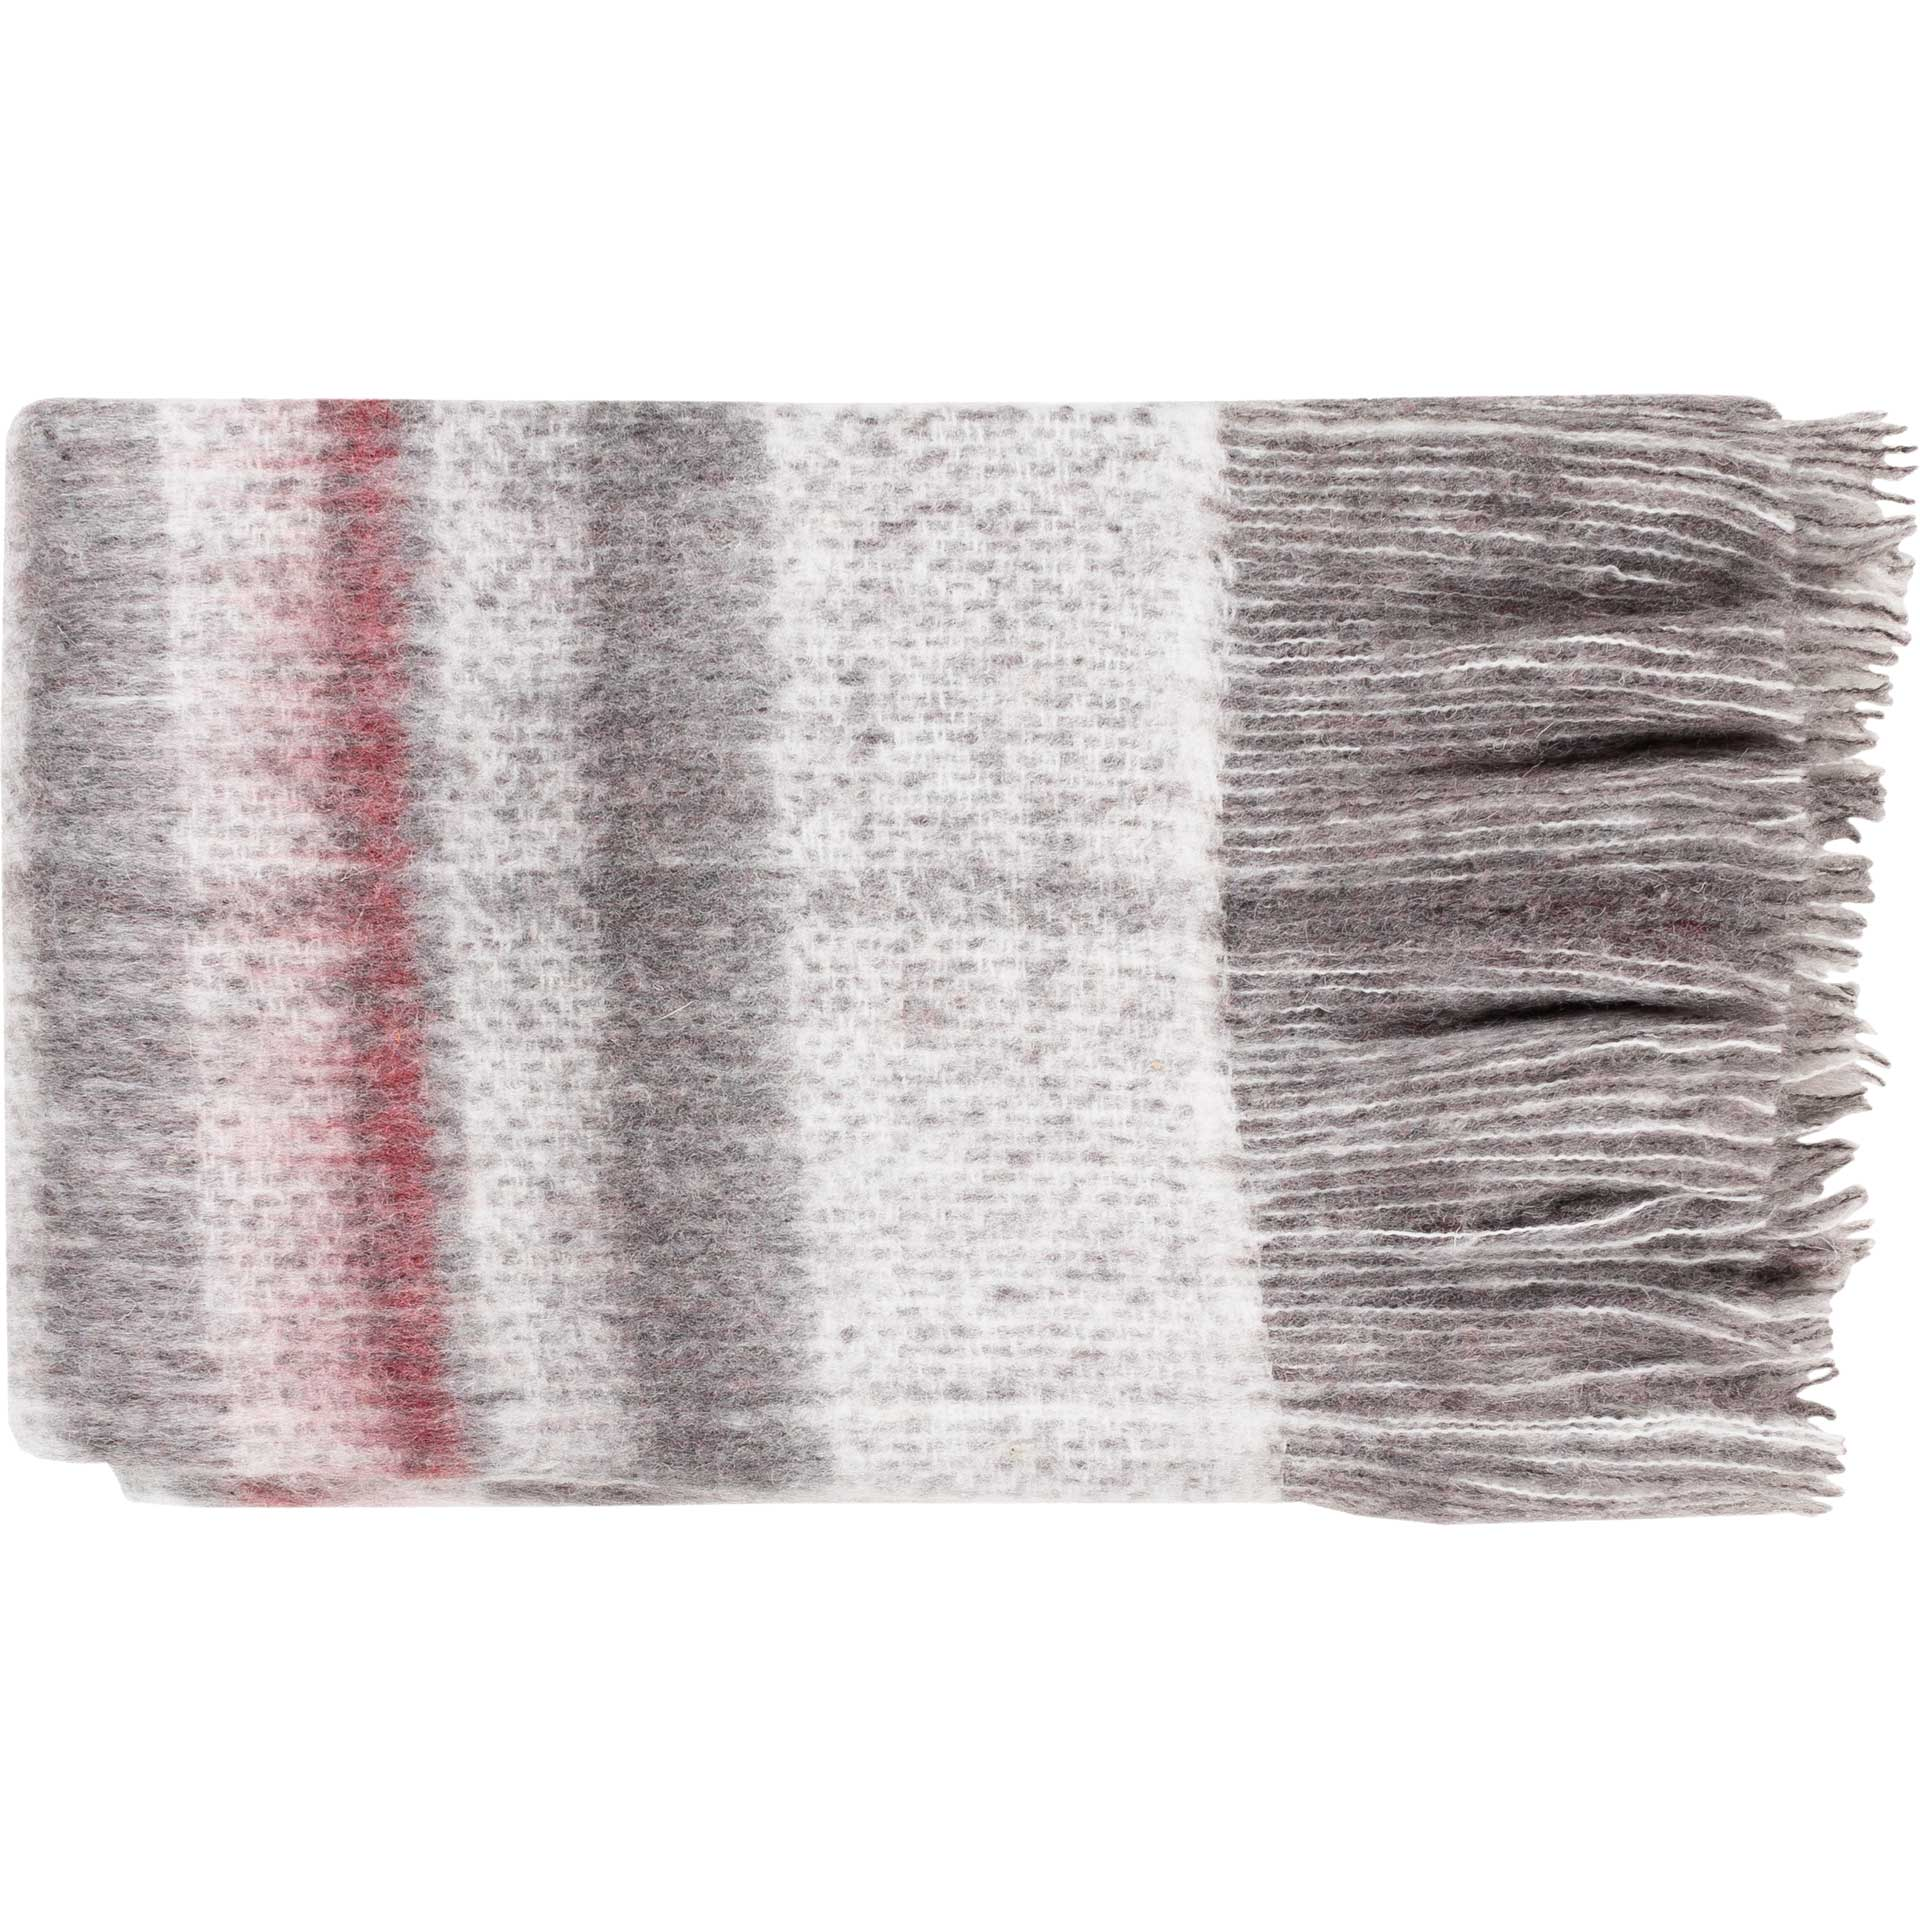 Sterling Throw Dark Red/Medium Gray/White